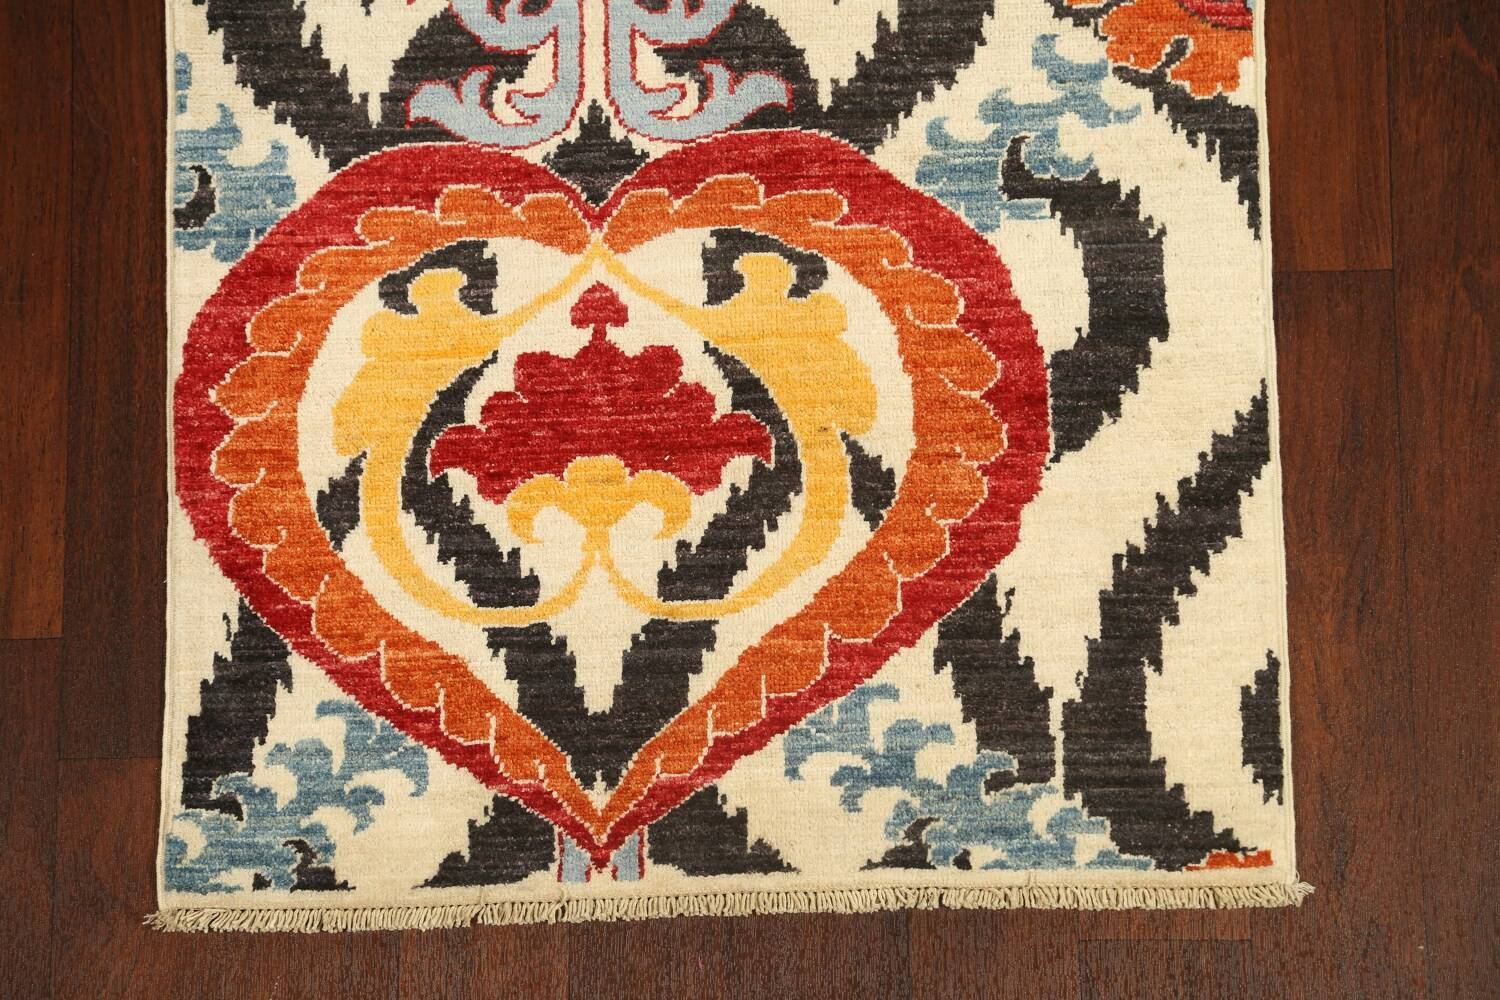 All-Over Floral IKats Oriental Runner Rug 3x8 image 8